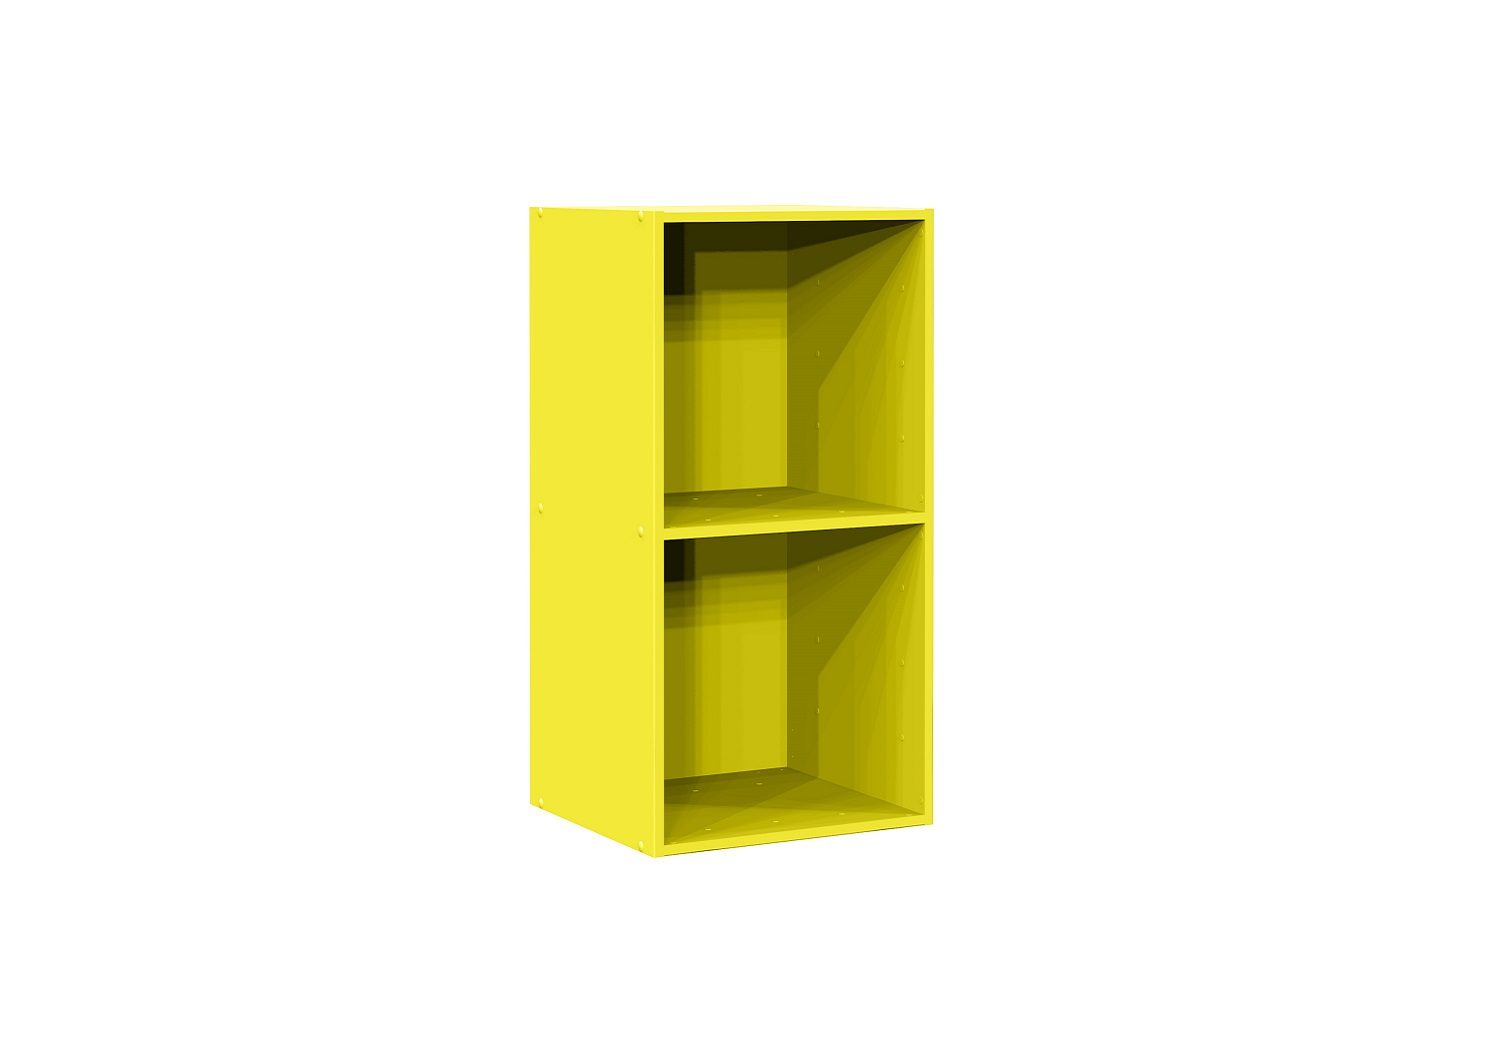 Bilrich Storage Furniture - Multi Kaz 2x1 Cube Green